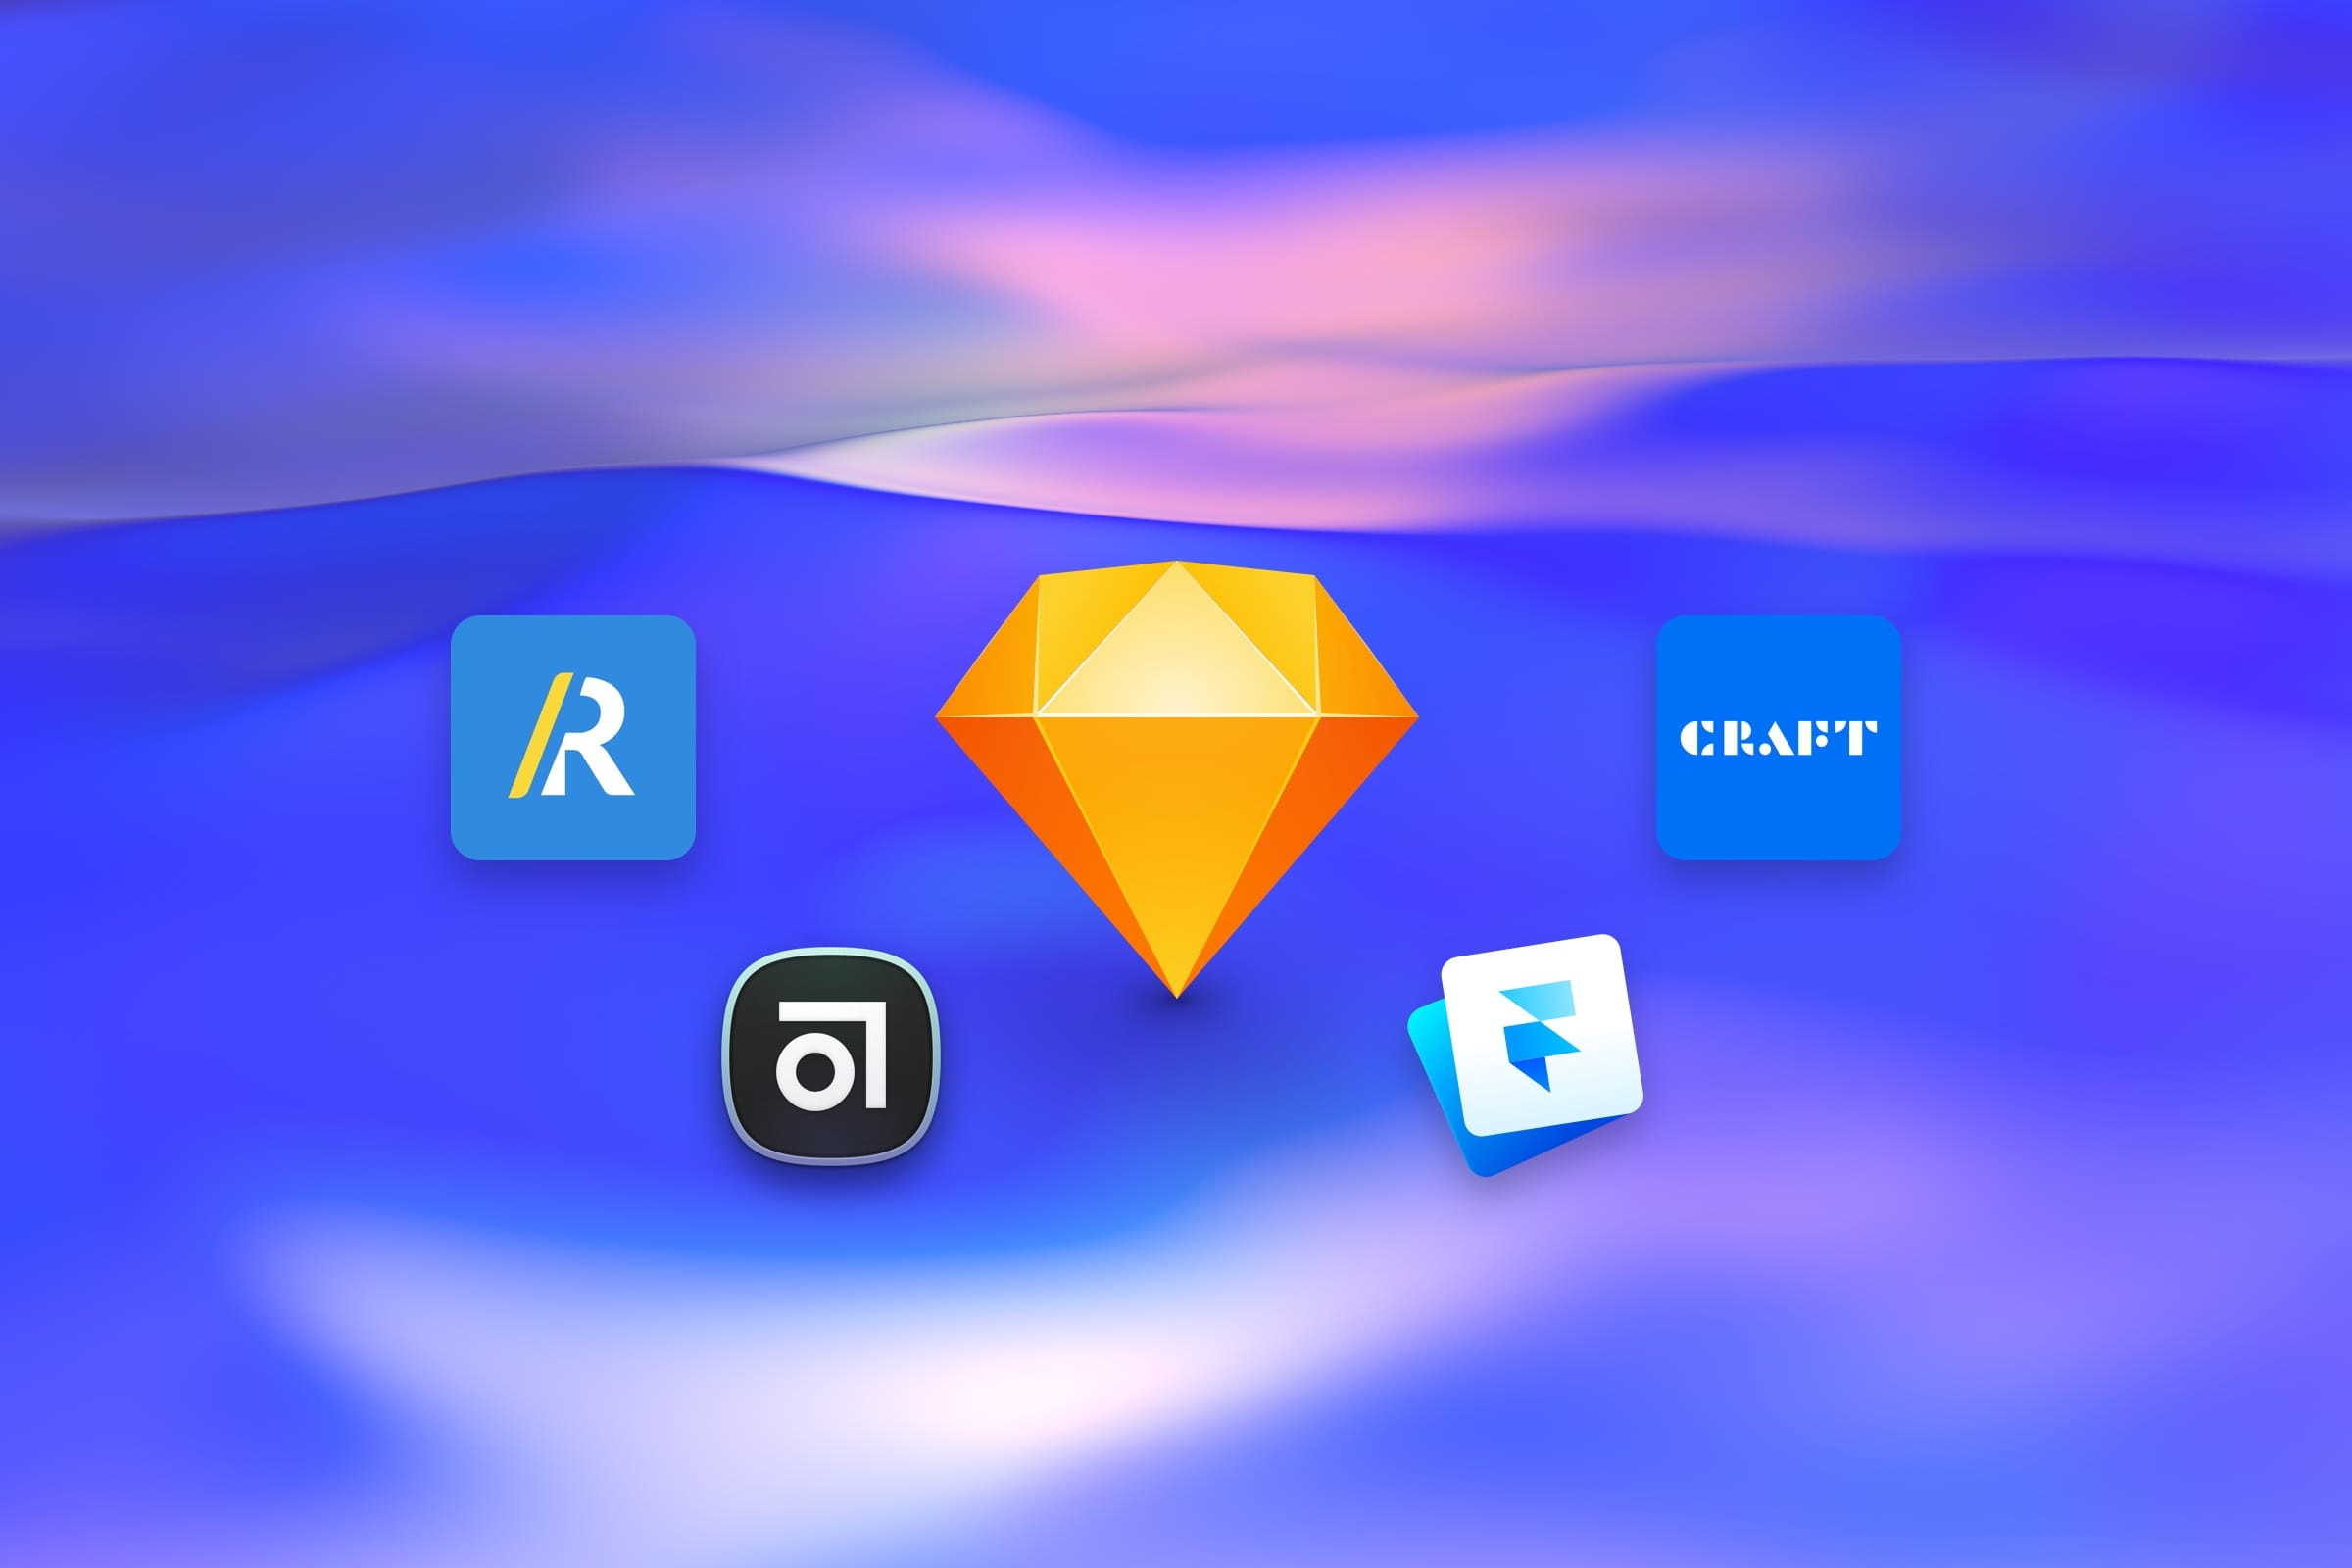 Principle is importing sketch files as cliparts picture royalty free library Powerful Start in Sketch - Design+Code picture royalty free library